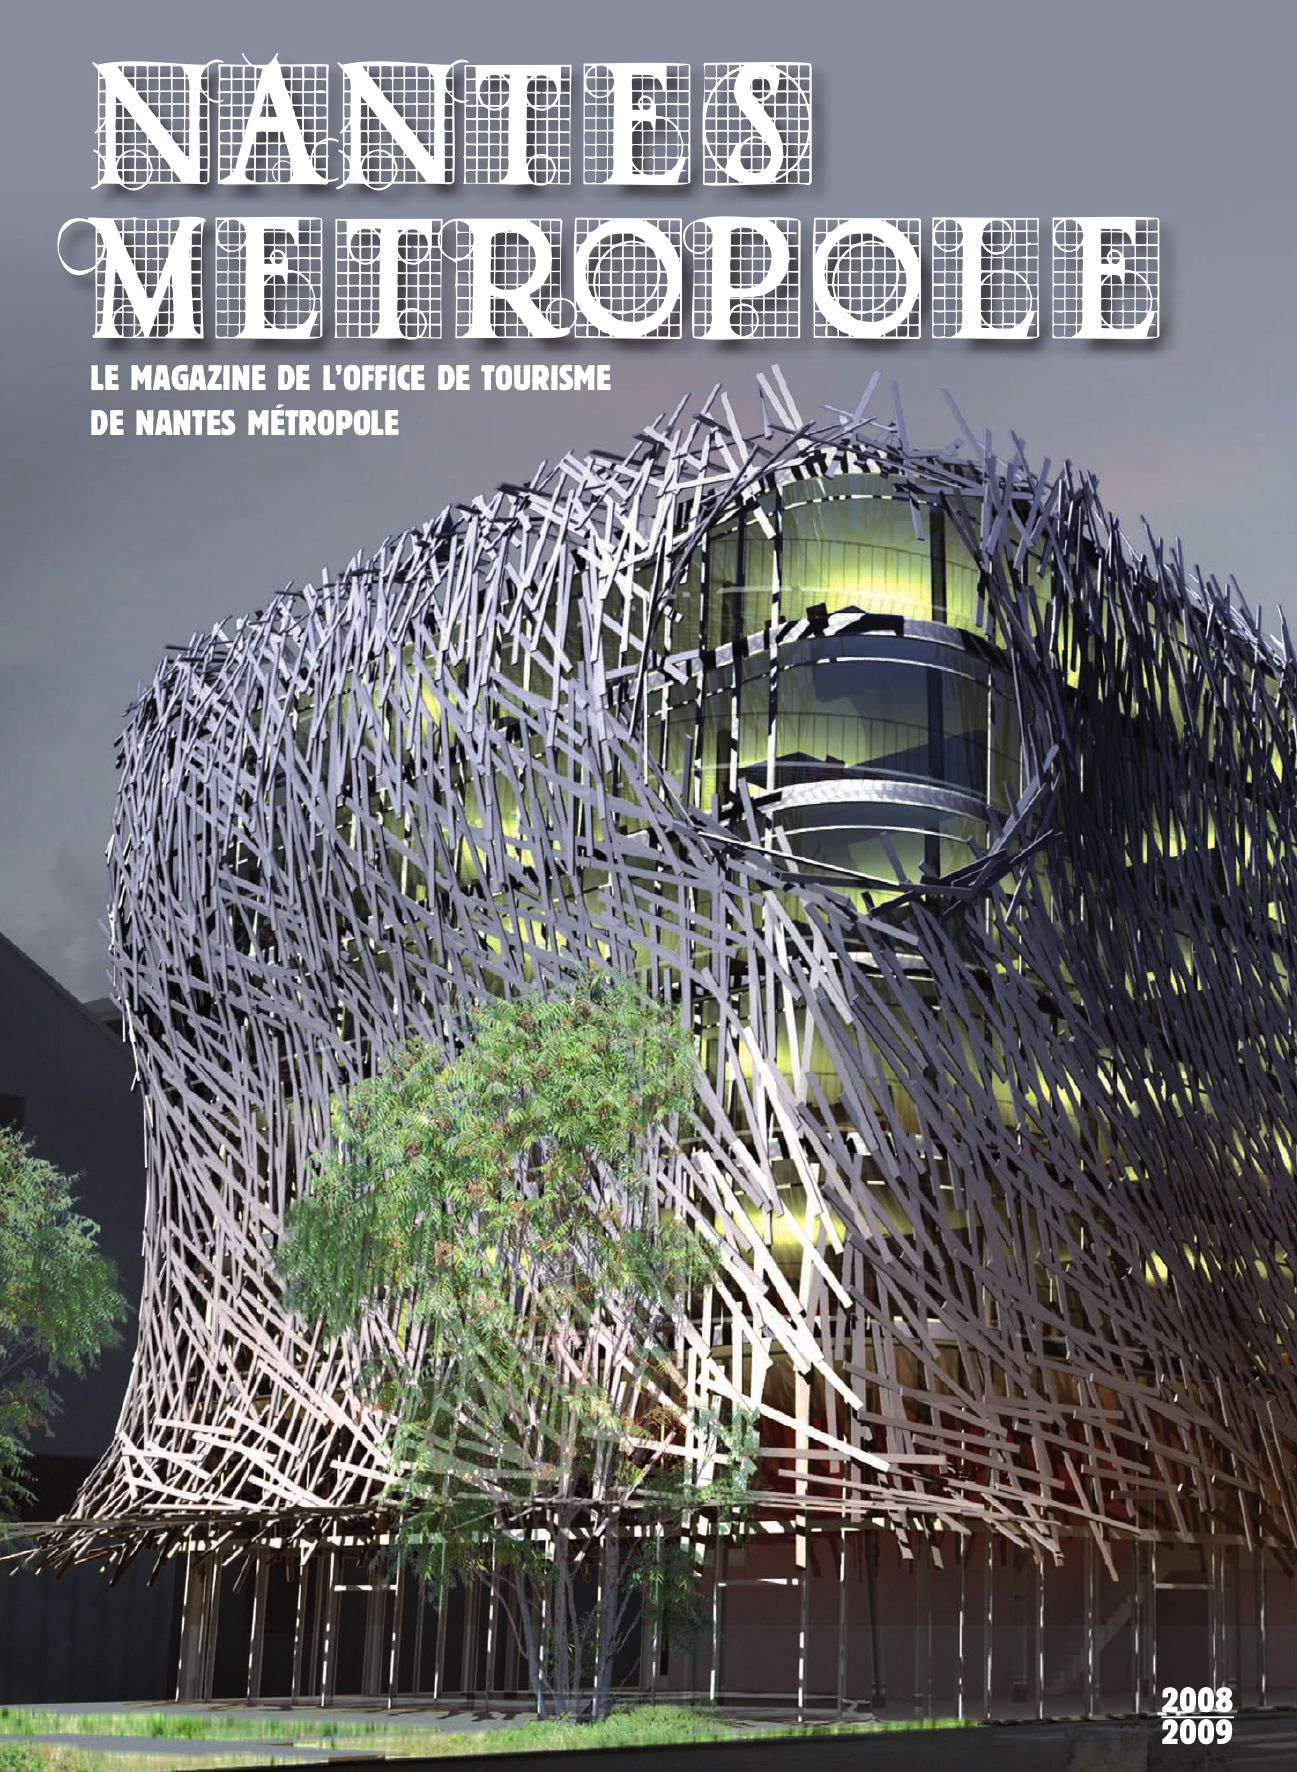 Nantes metropole 2008 by les ditions du privil ge issuu - Office du tourisme nantes ...